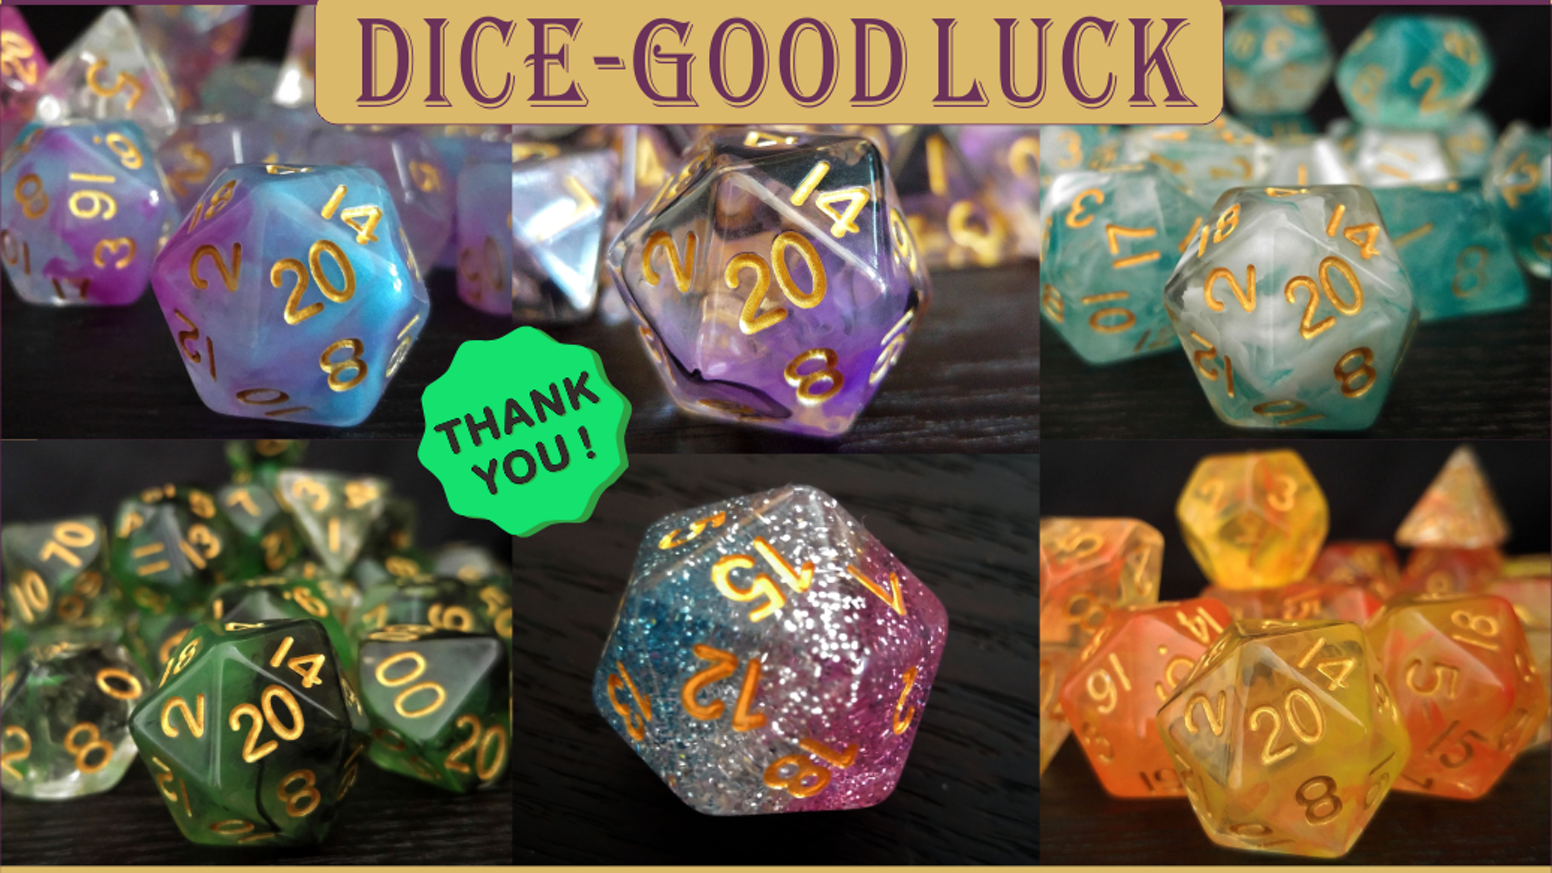 An unique iconic dice on D20 for RPG adventures / board game enthusiasts! Available in - 7pcs sets, 11pcs sets, d6, d10, and d20.